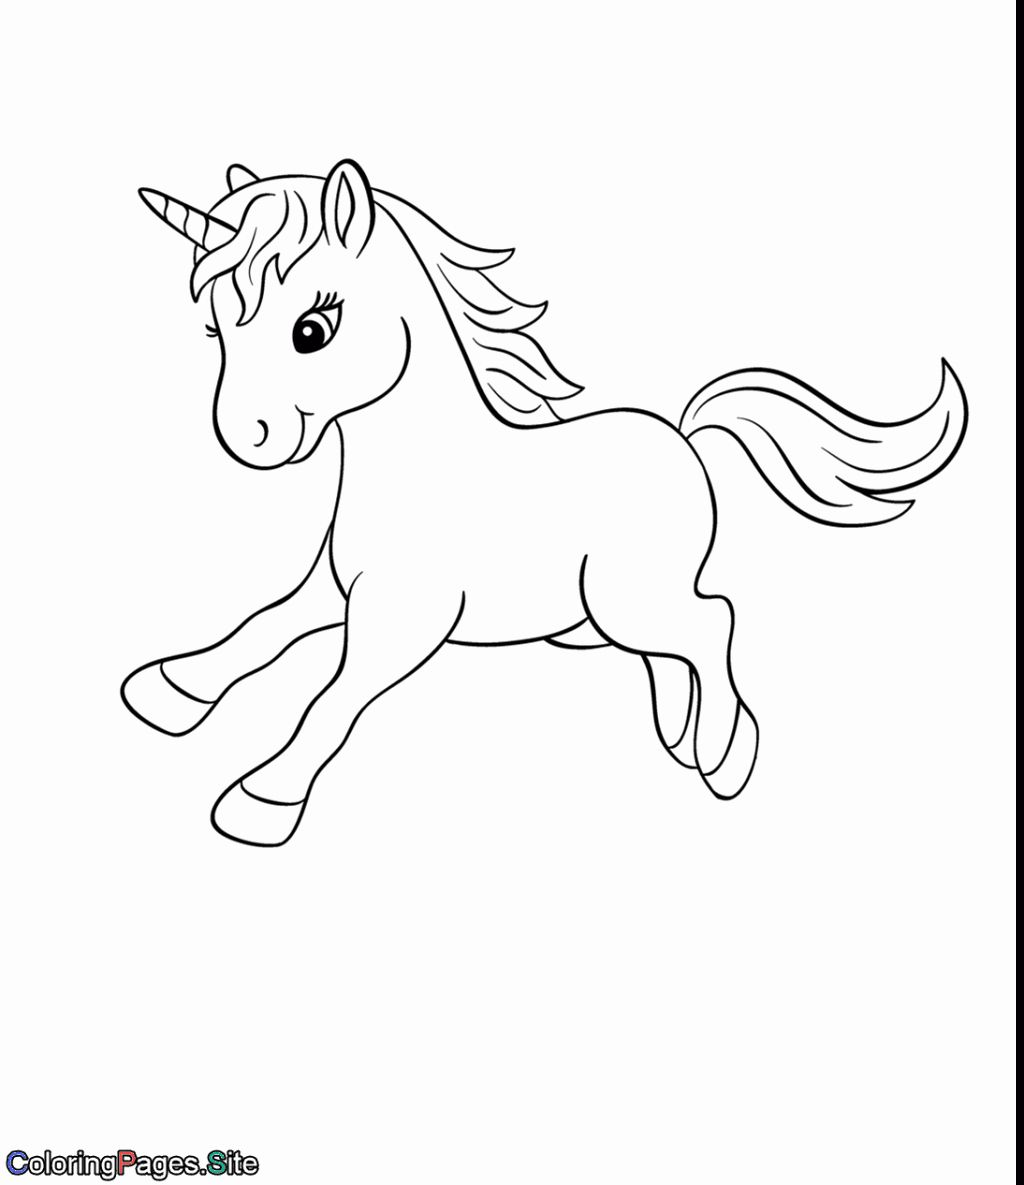 Unicorn Free Printable Coloring Pages Luxury Coloring Book Baby Unicorn Coloring Pages Cute To Print In 2020 Unicorn Coloring Pages Baby Unicorn Cute Coloring Pages